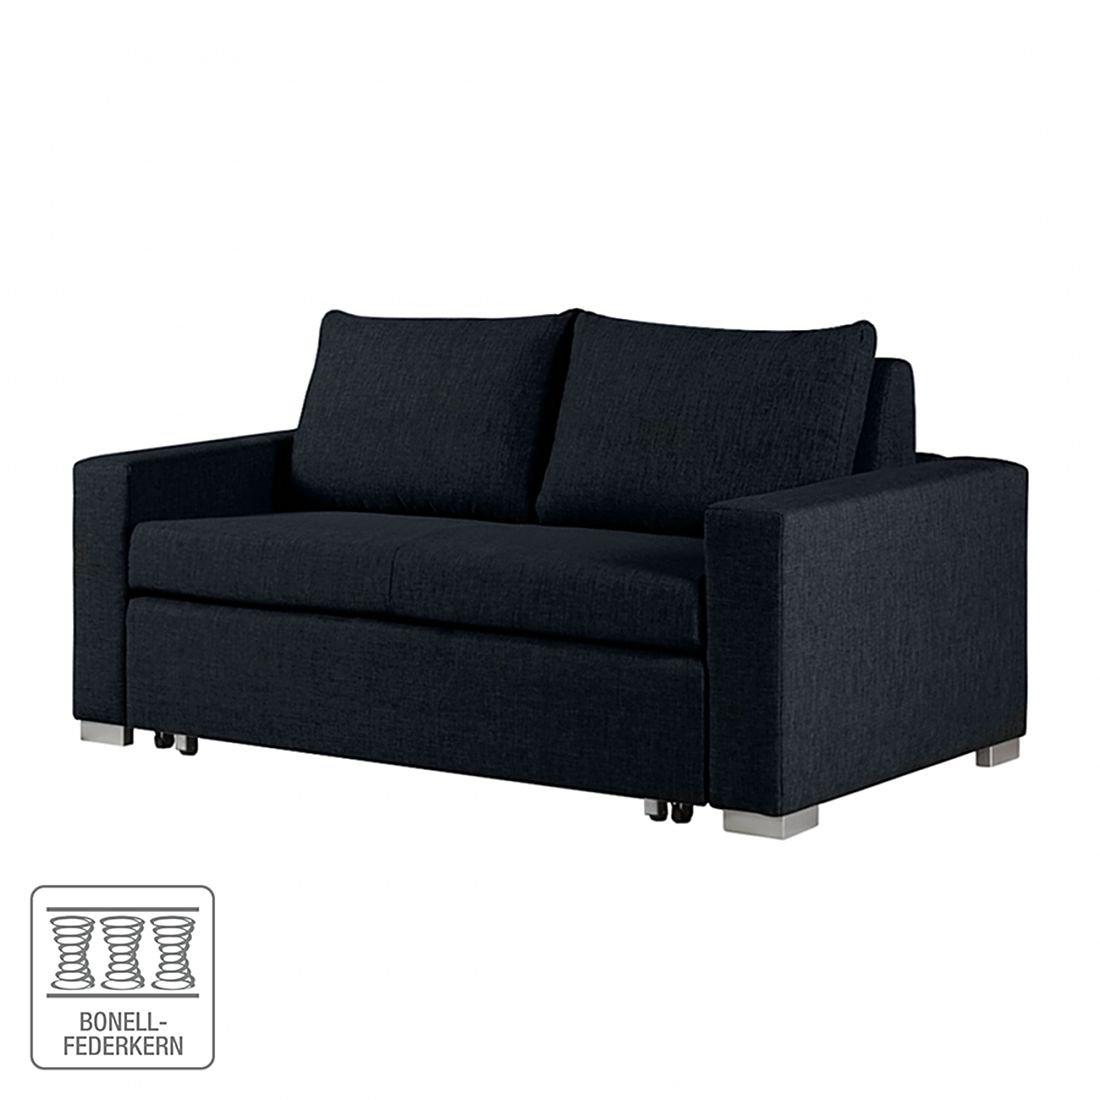 schlafsofa latina webstoff schwarz breite 190 cm roomscape bestellen. Black Bedroom Furniture Sets. Home Design Ideas